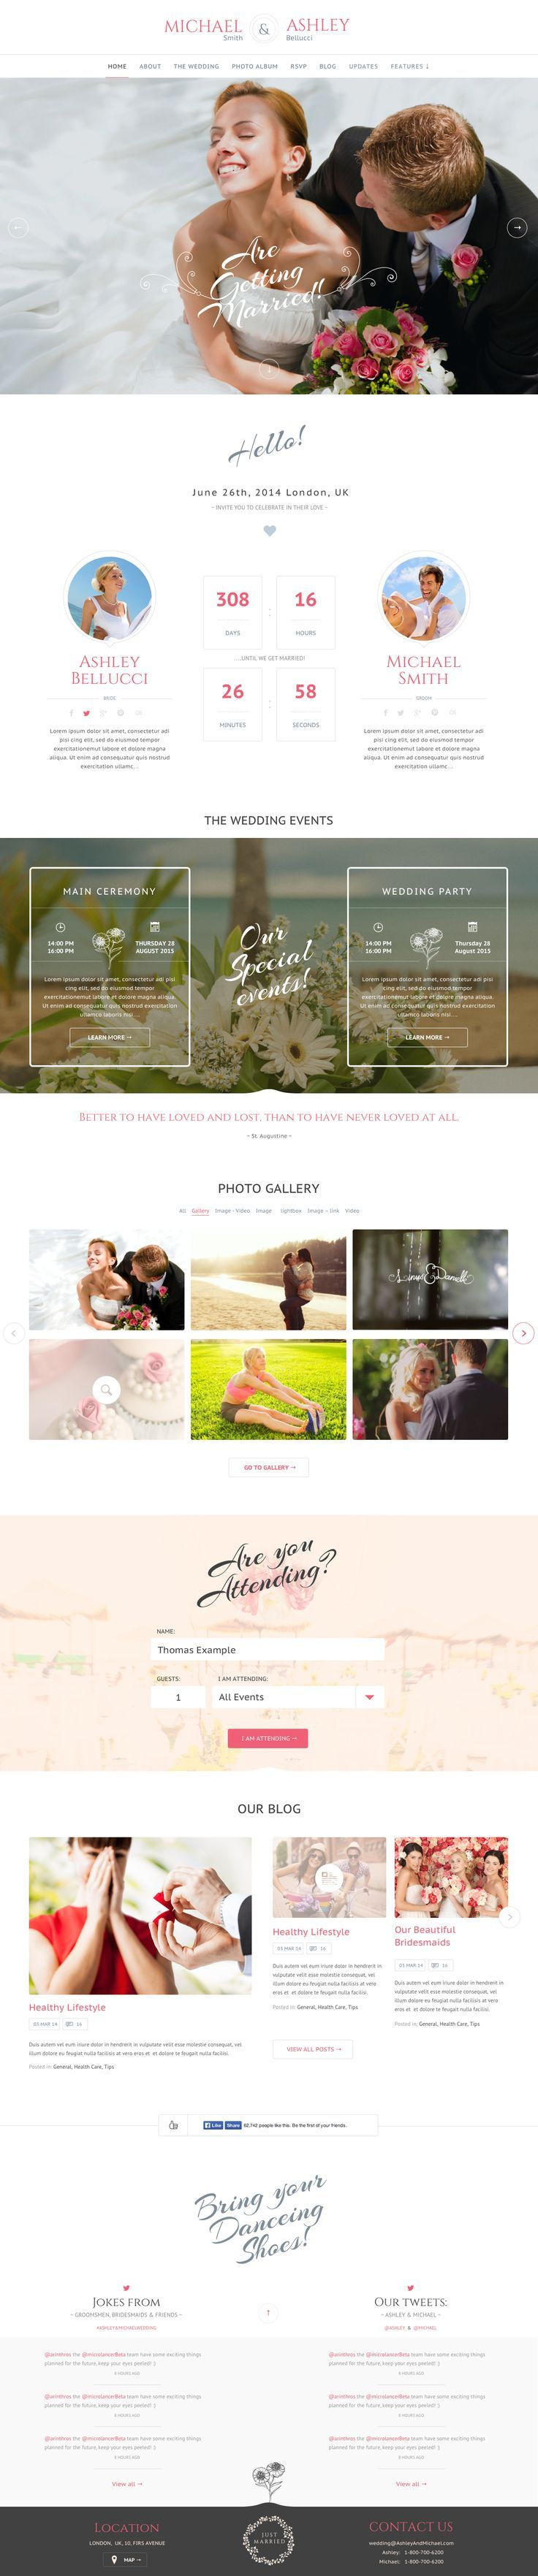 Honeymoon - Wedding & Wedding planner WordPress | Wordpress ...